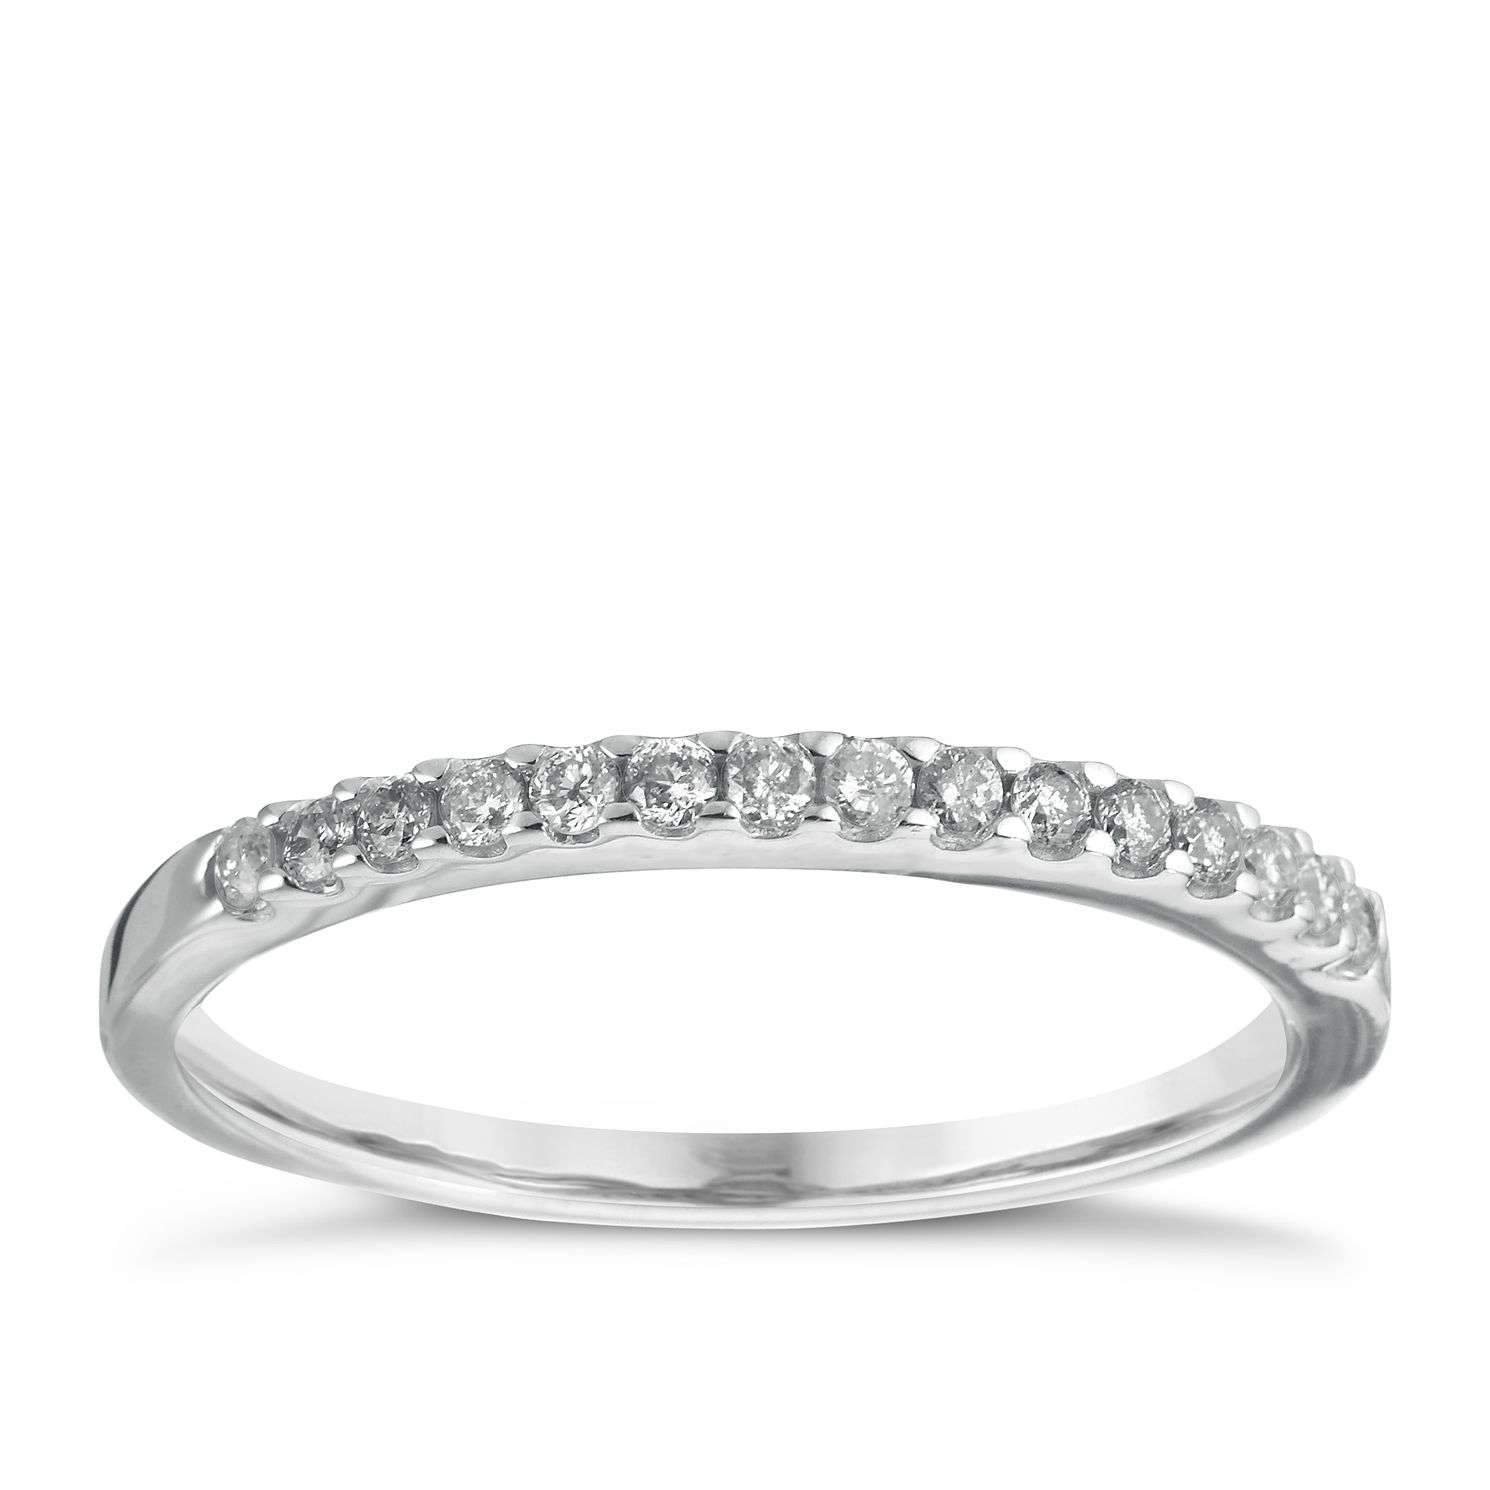 18ct White Gold 0.15ct Wedding Band - Product number 5884136